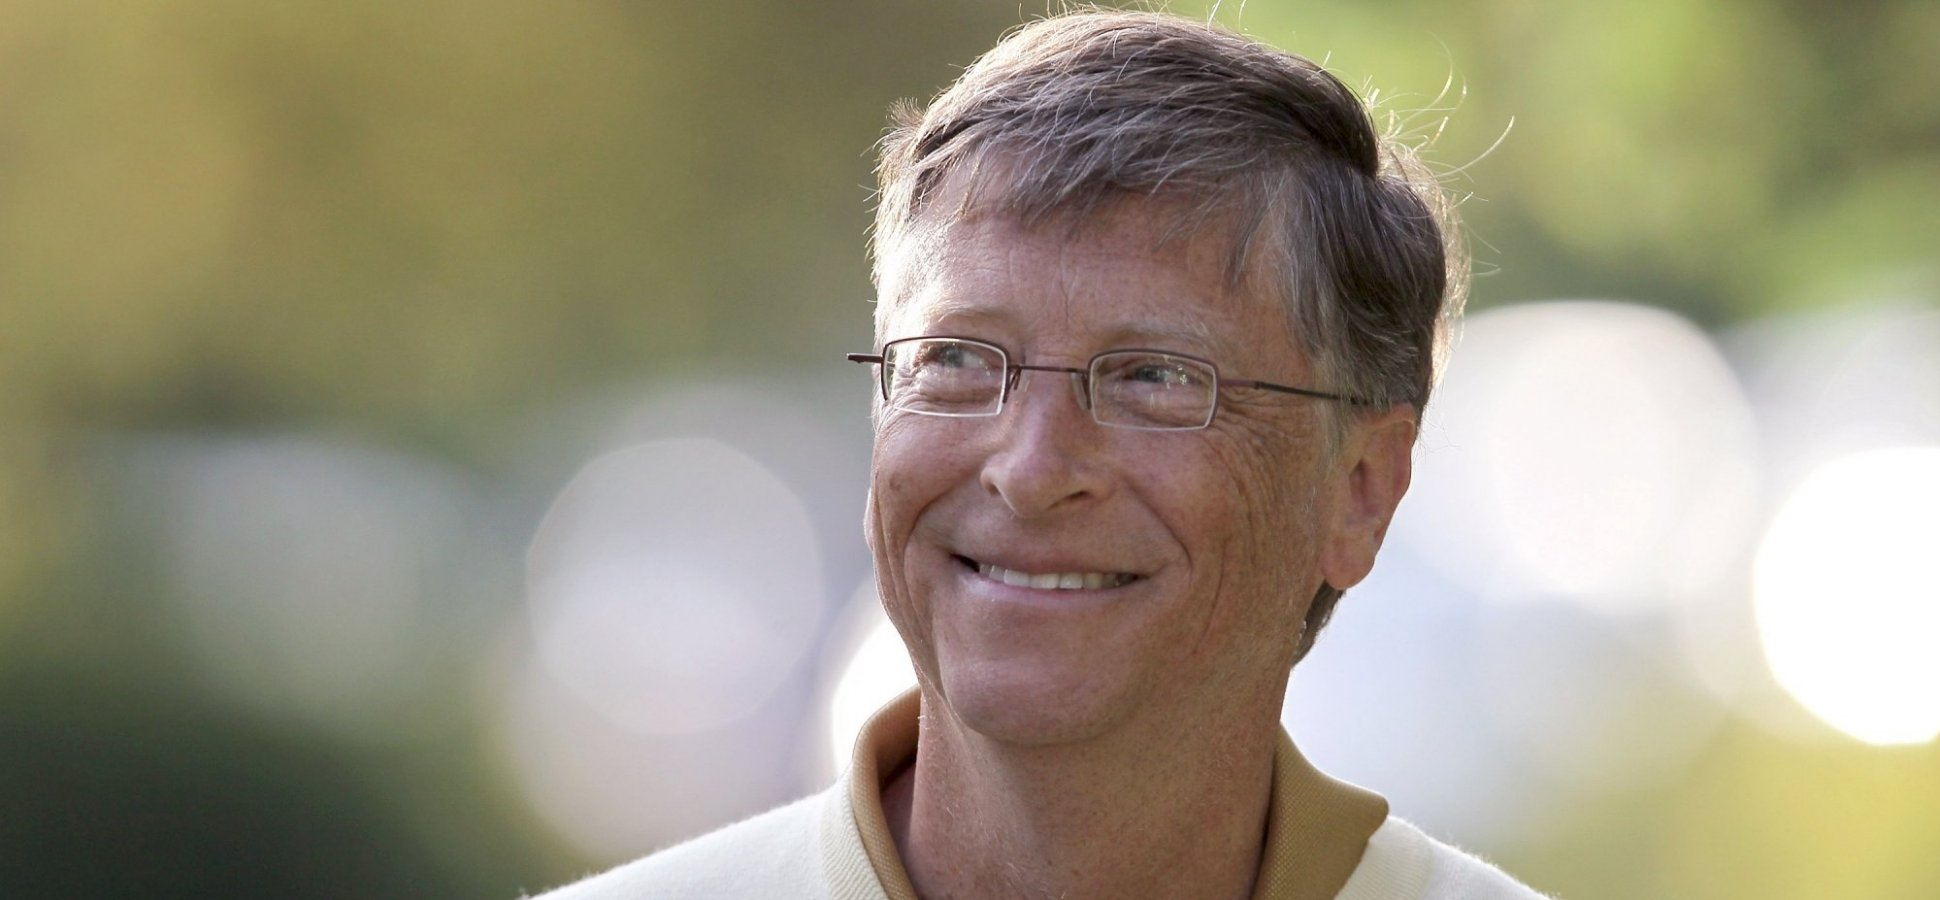 Bill Gates Says His Level of Happiness Is Much Higher at 63 Than at 25 Because He Chooses to Do These 4 Things